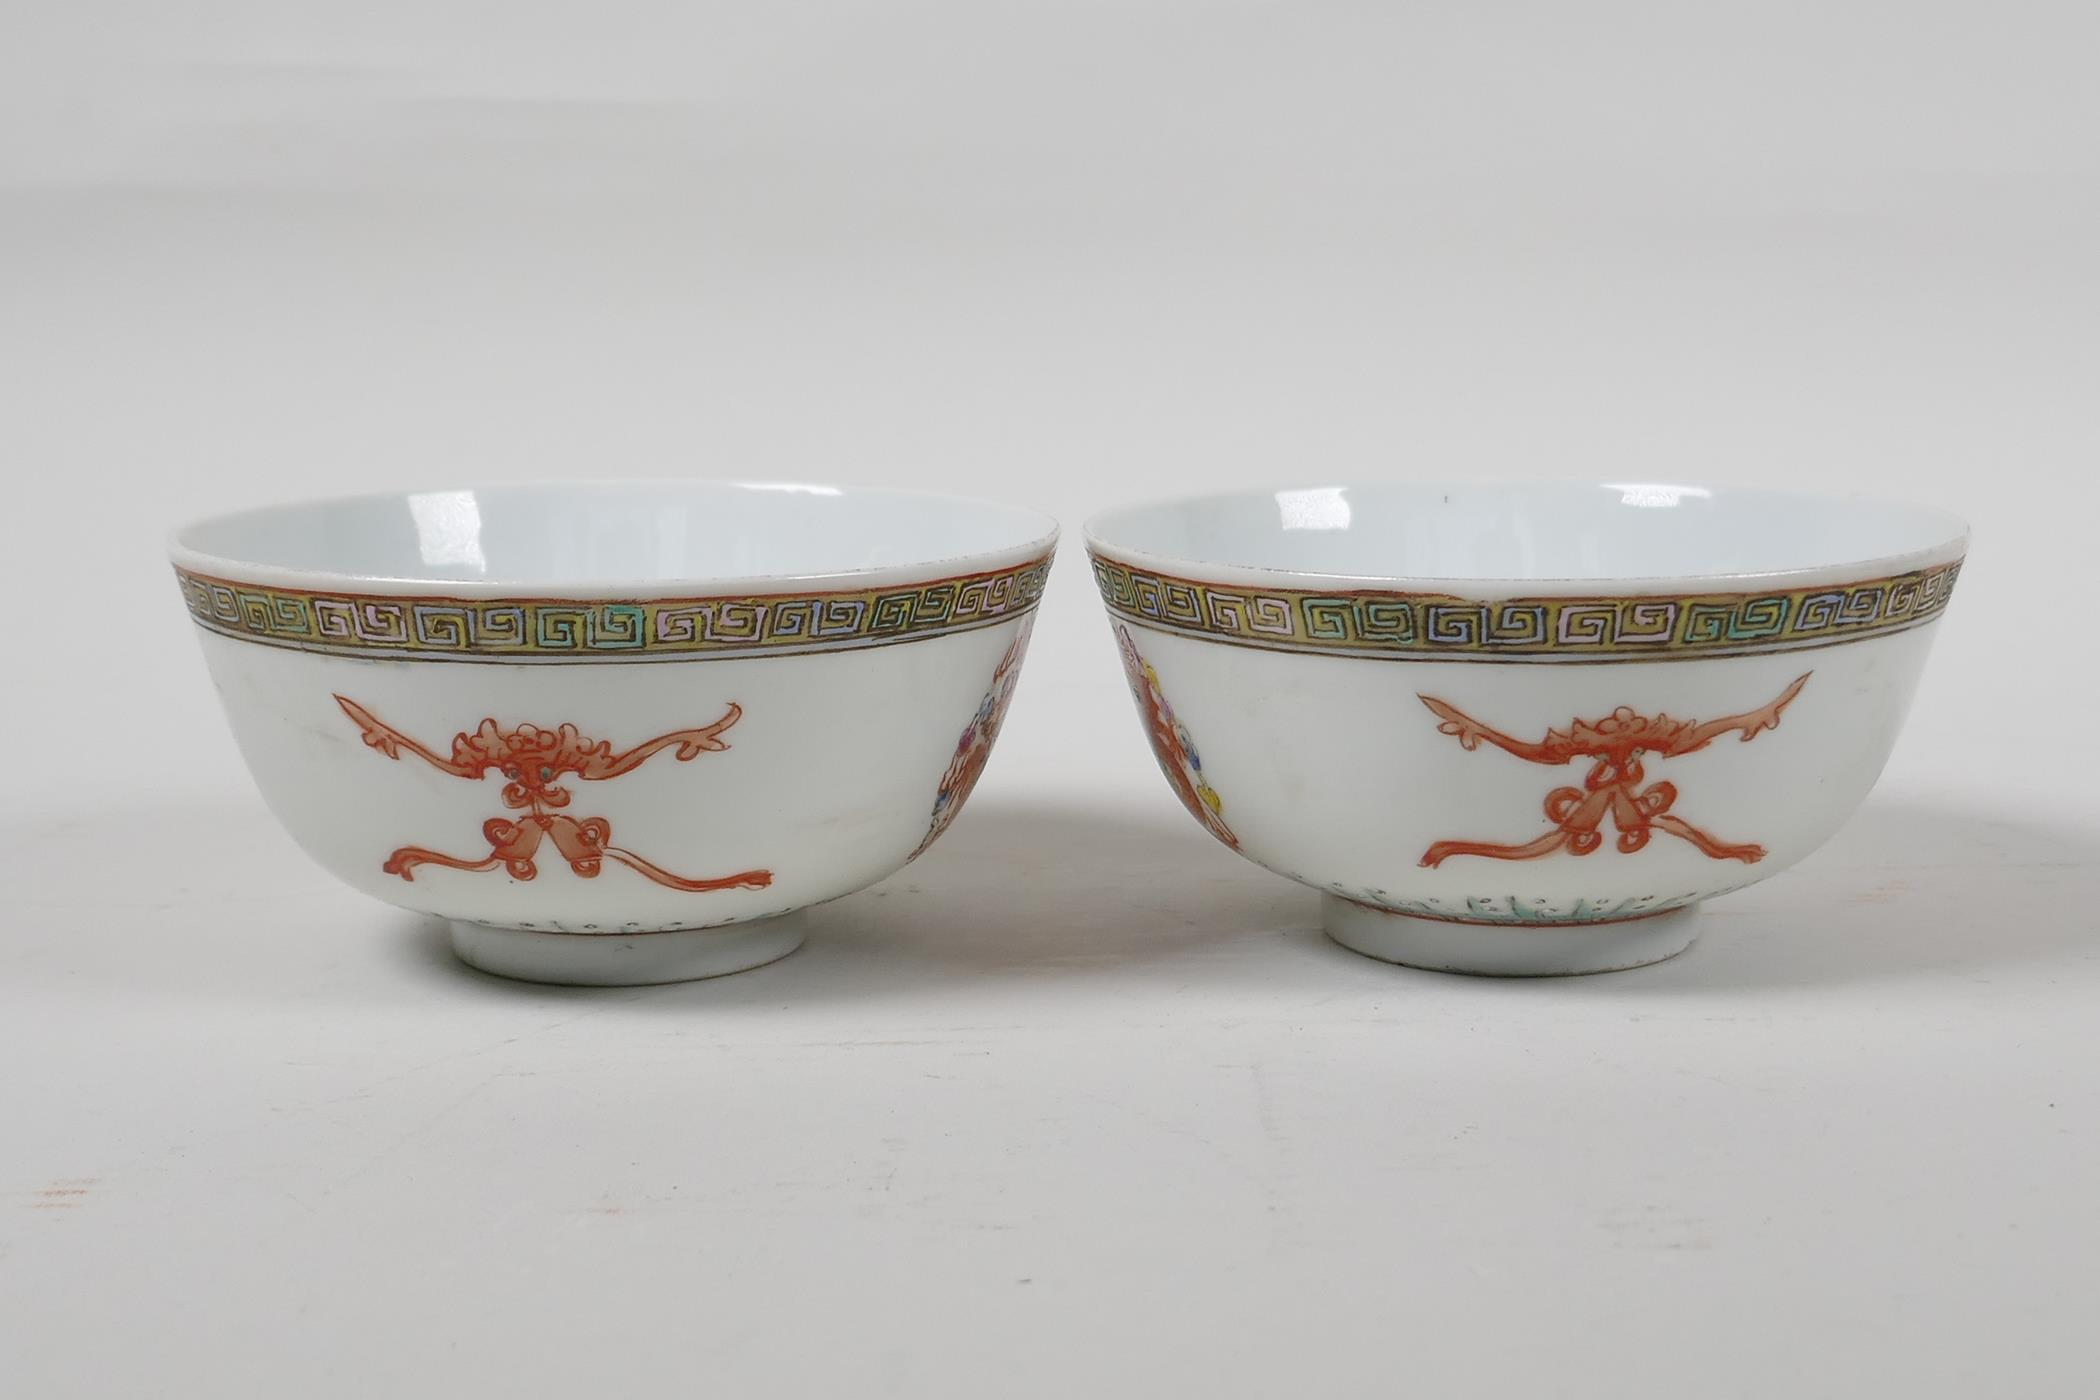 A pair of Chinese polychrome porcelain rice bowls decorated with auspicious items and dragons, - Image 2 of 4